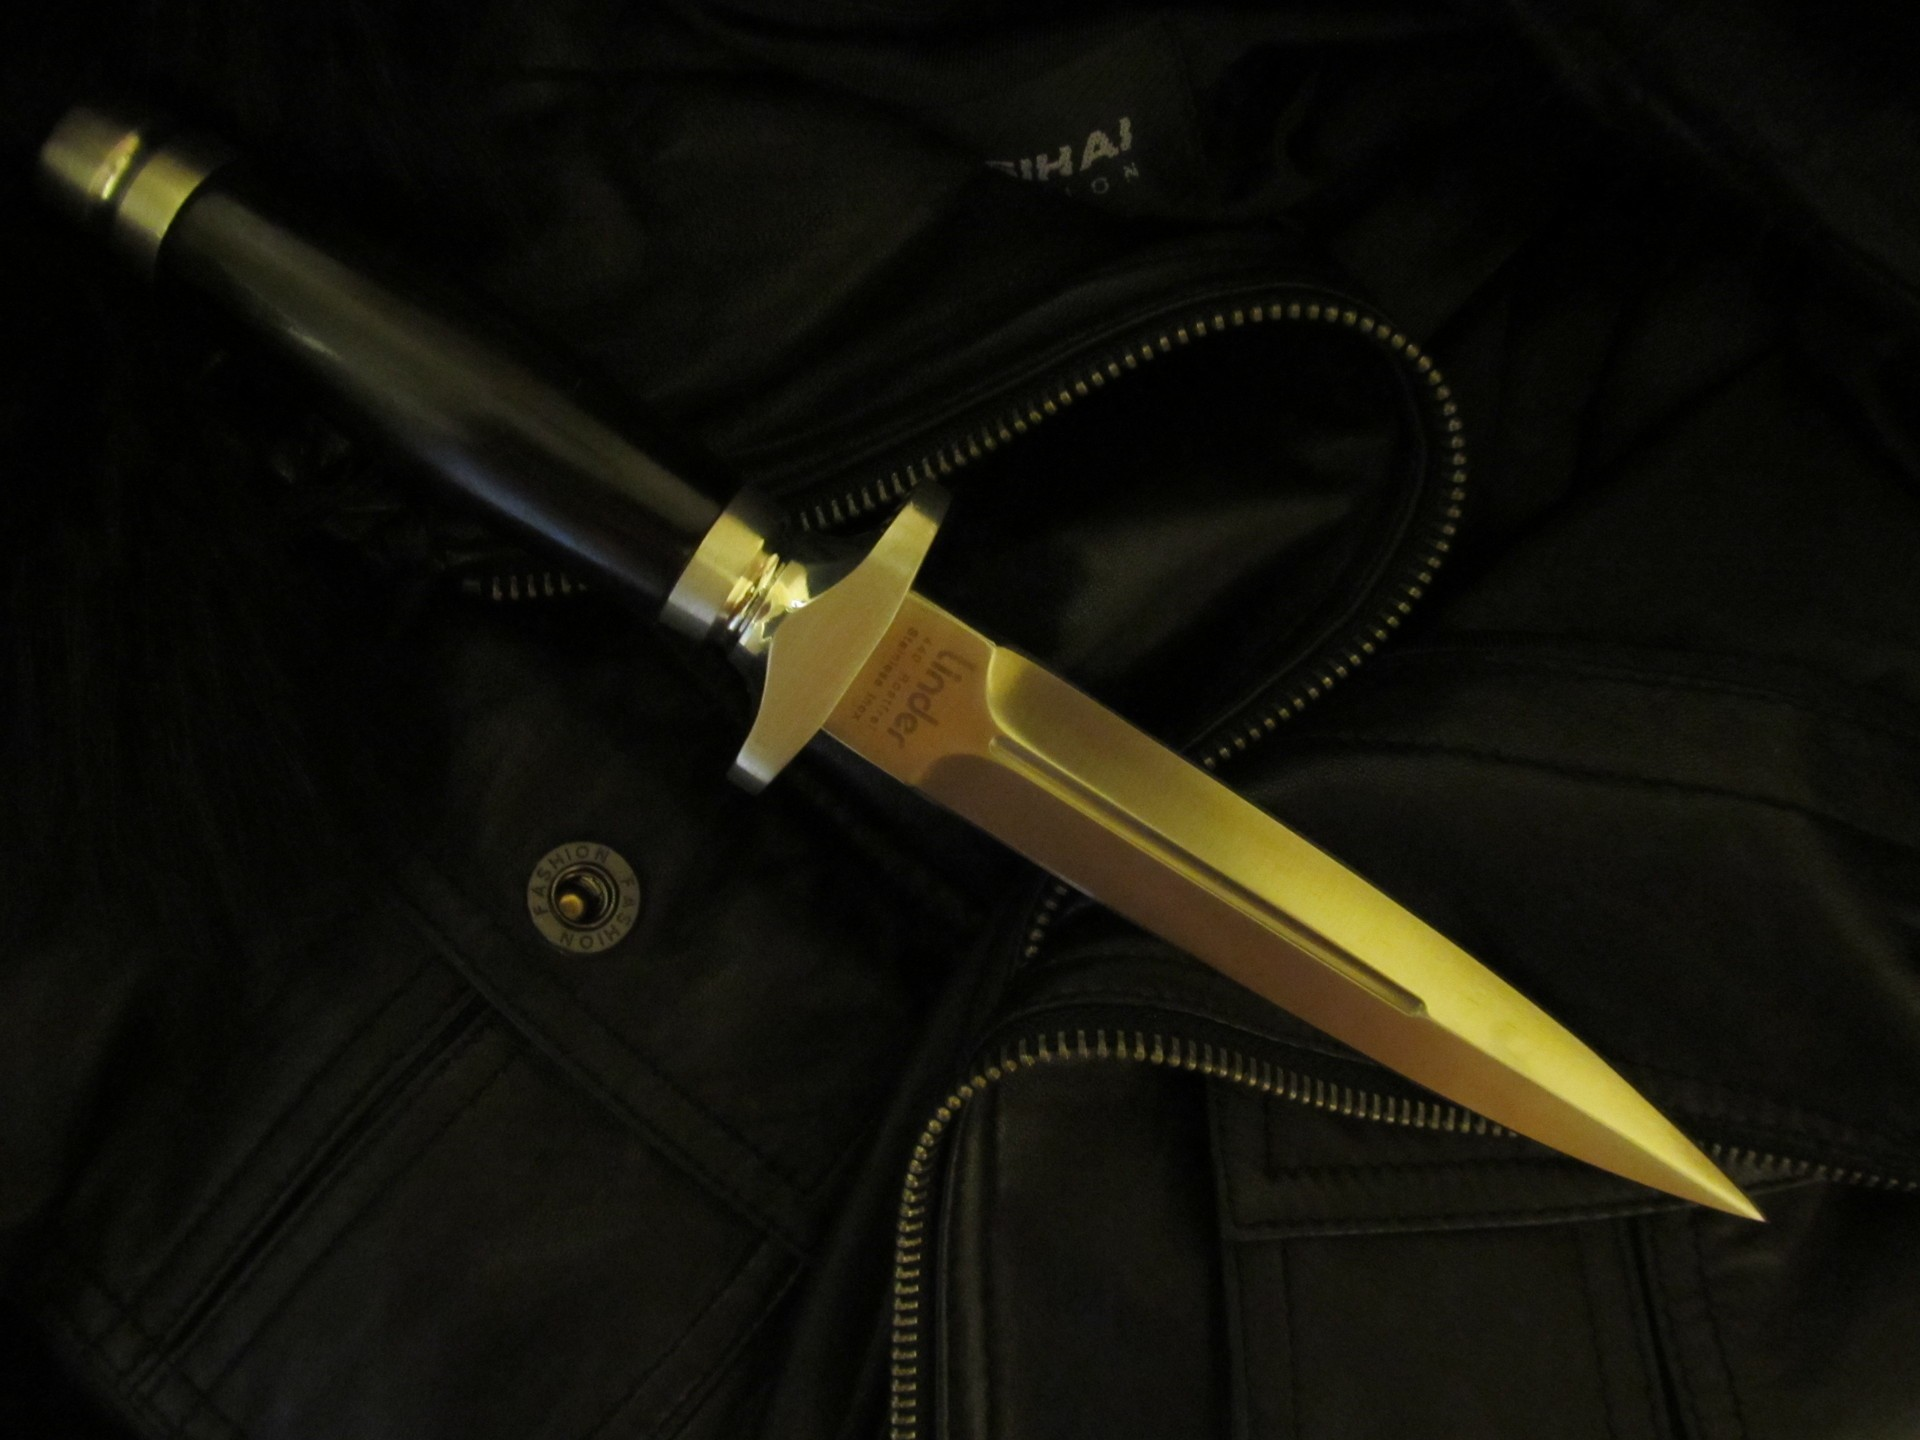 Daggers Knives edge HD Wallpaper